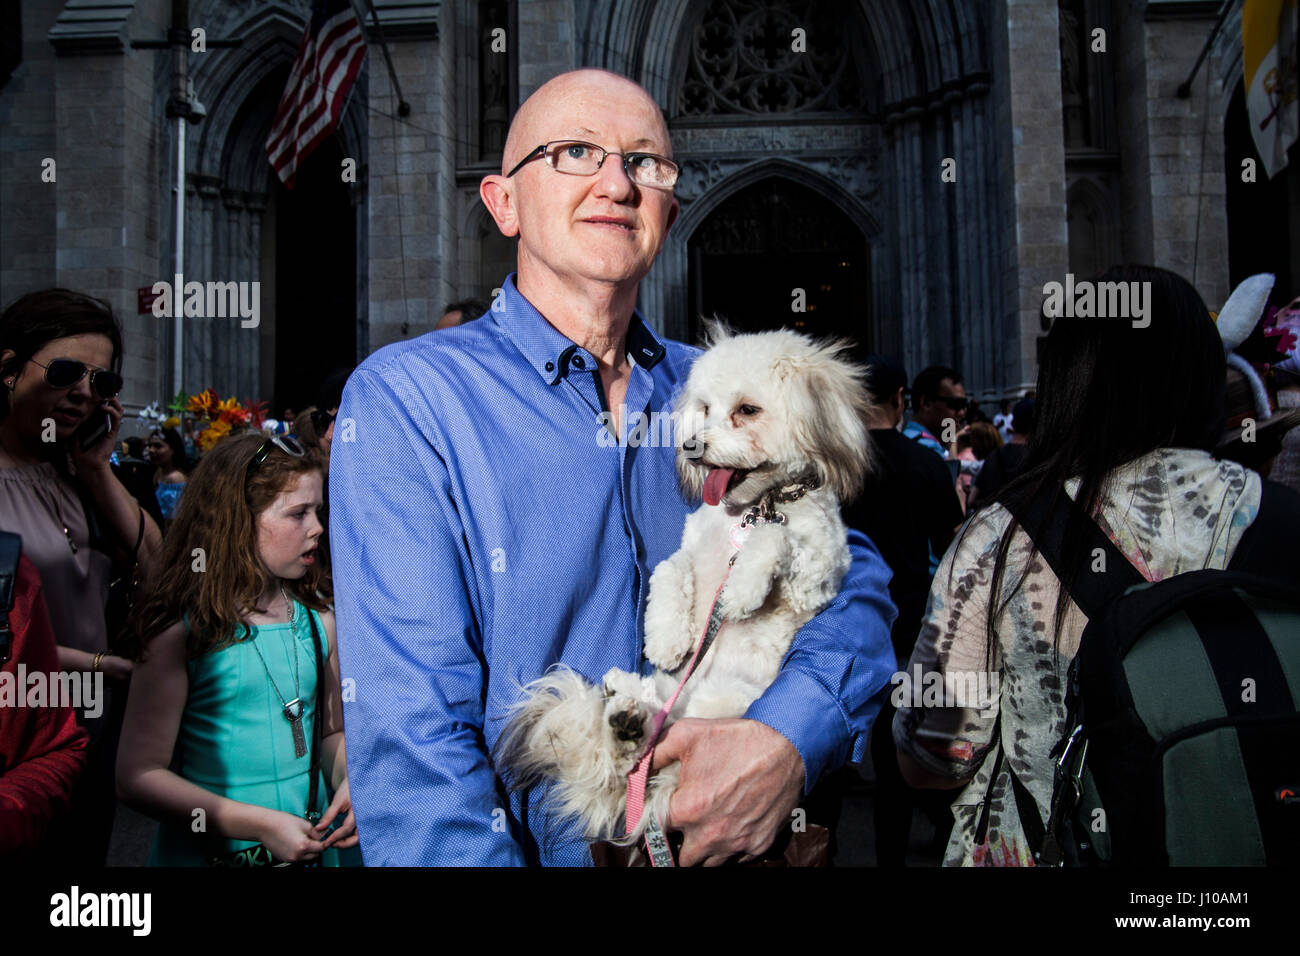 Dress up new york - New York Usa 16th Apr 2017 New Yorkers And Their Pets Dress Up In Colourful Outfits For The City S Annual Easter Parade